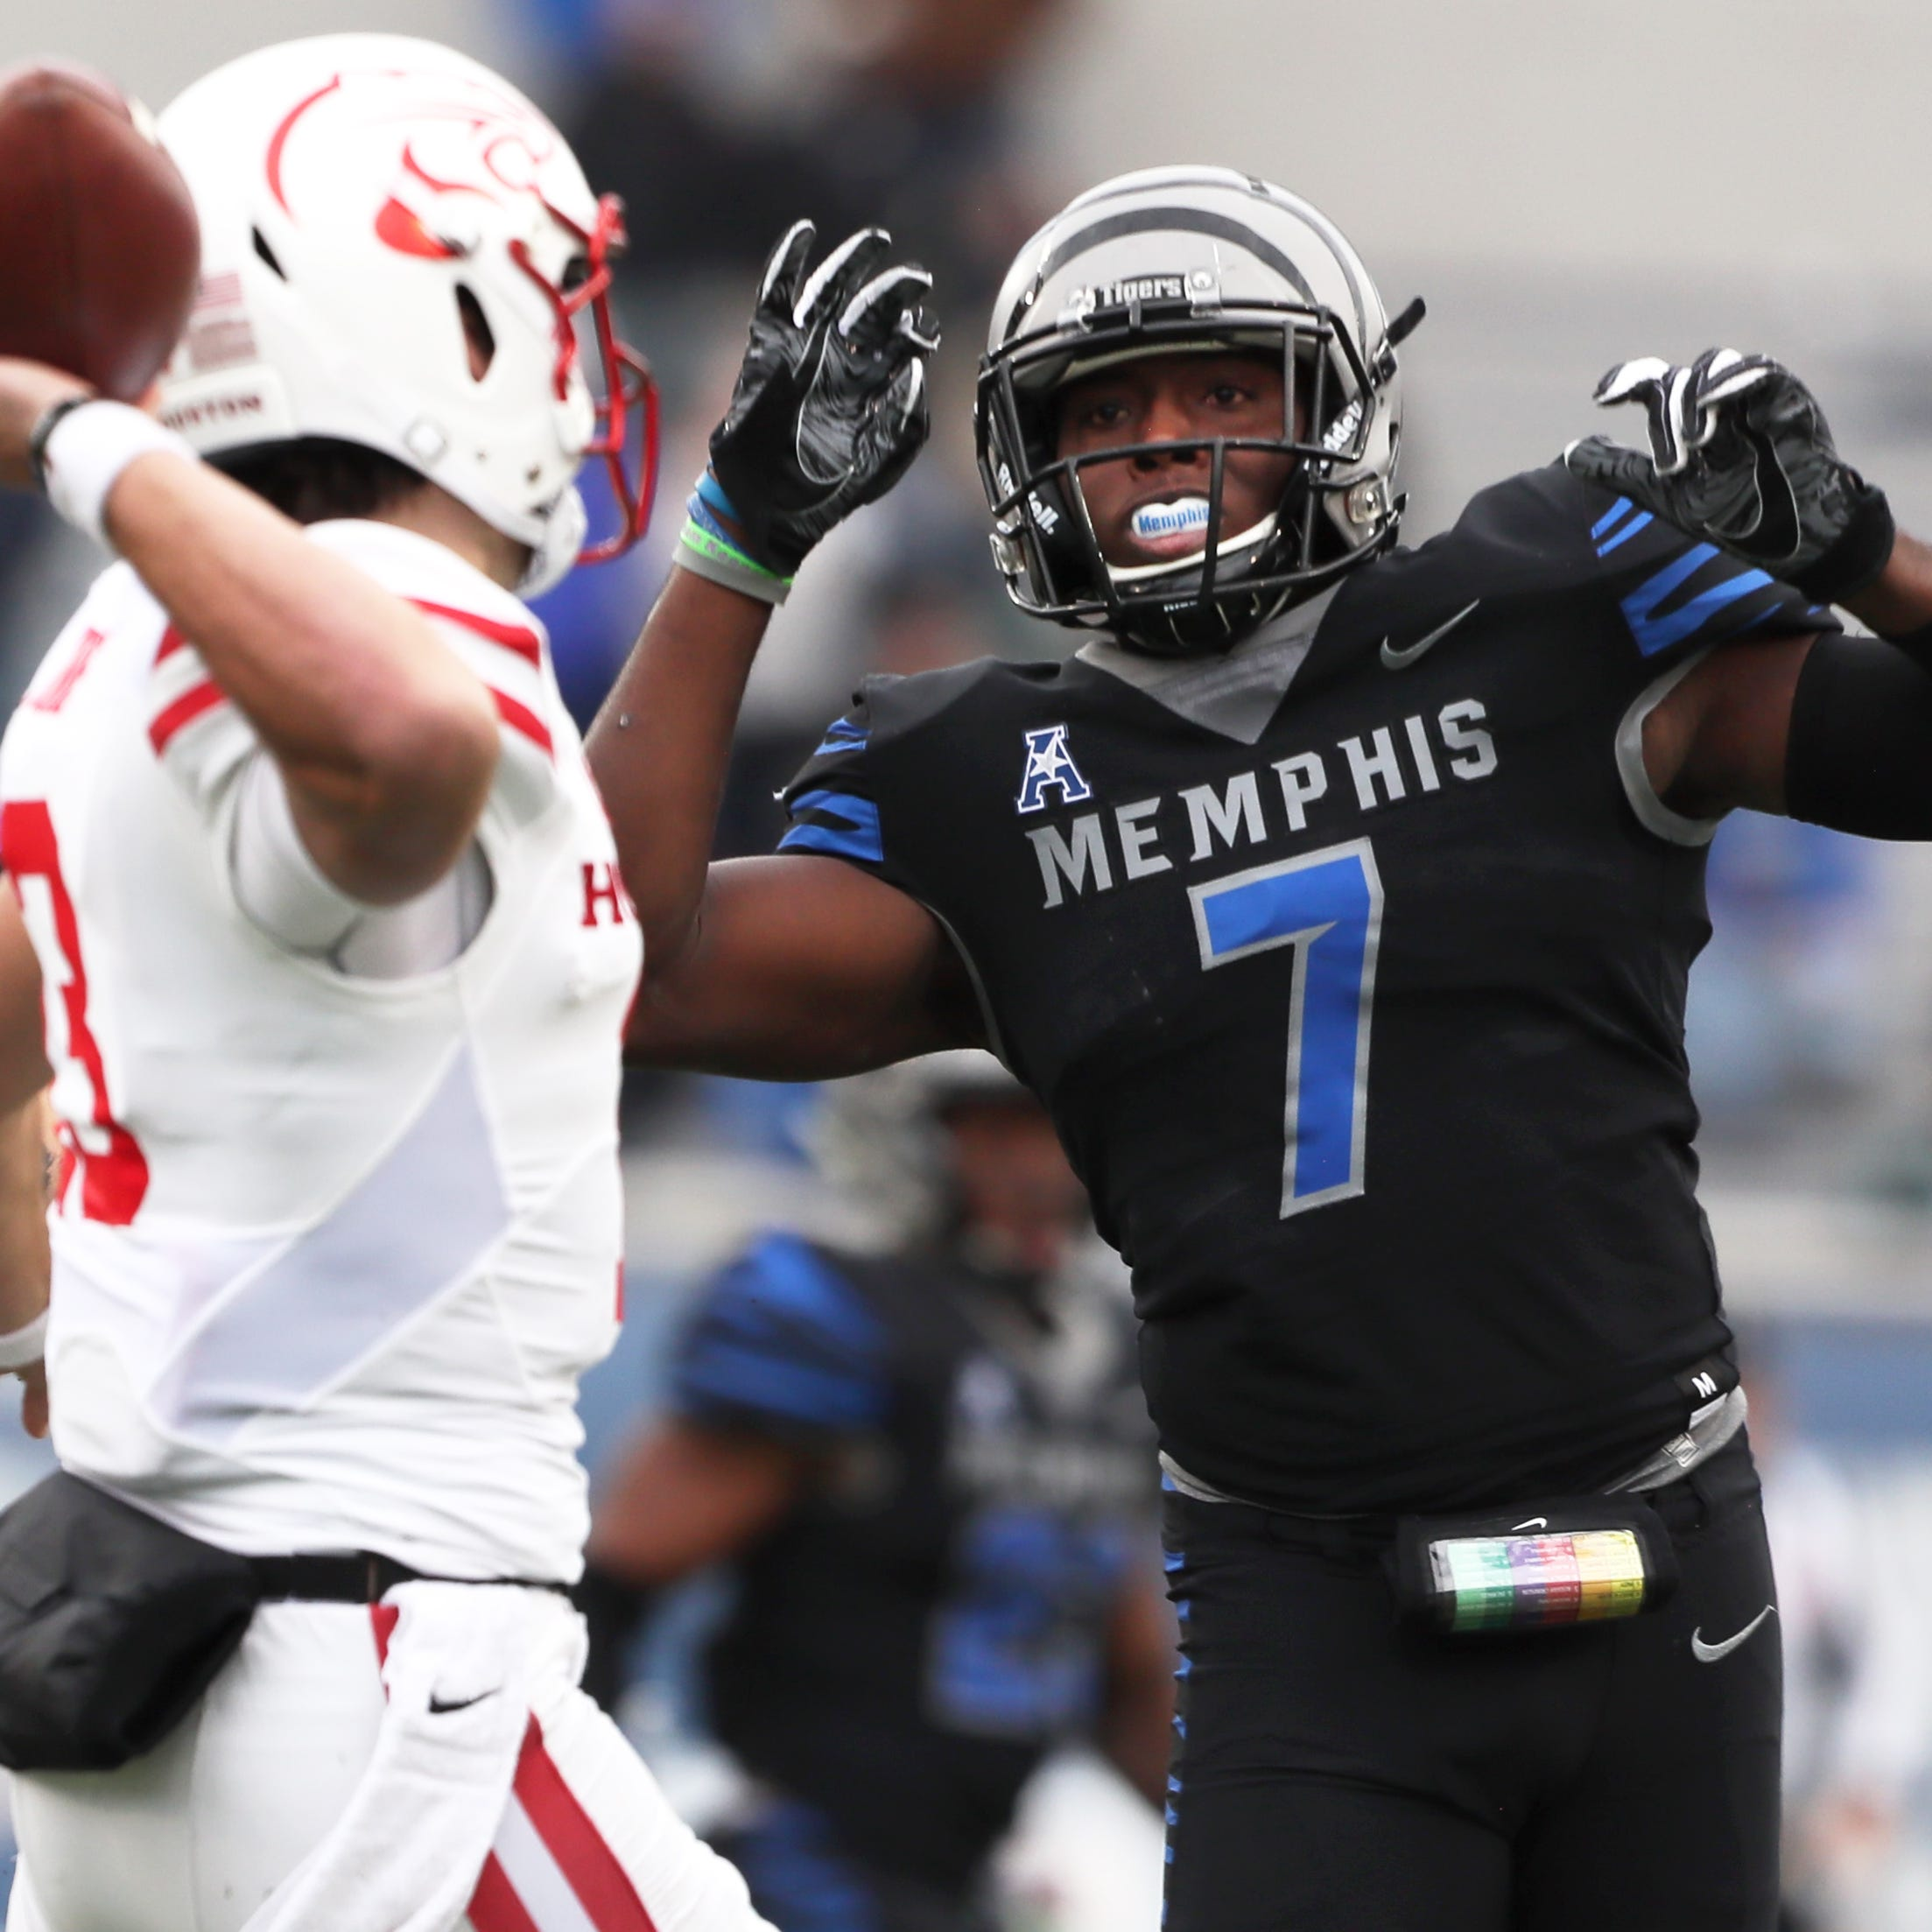 Memphis' Curtis Akins, Trevon Tate sign free agent deals with Bengals, Raiders